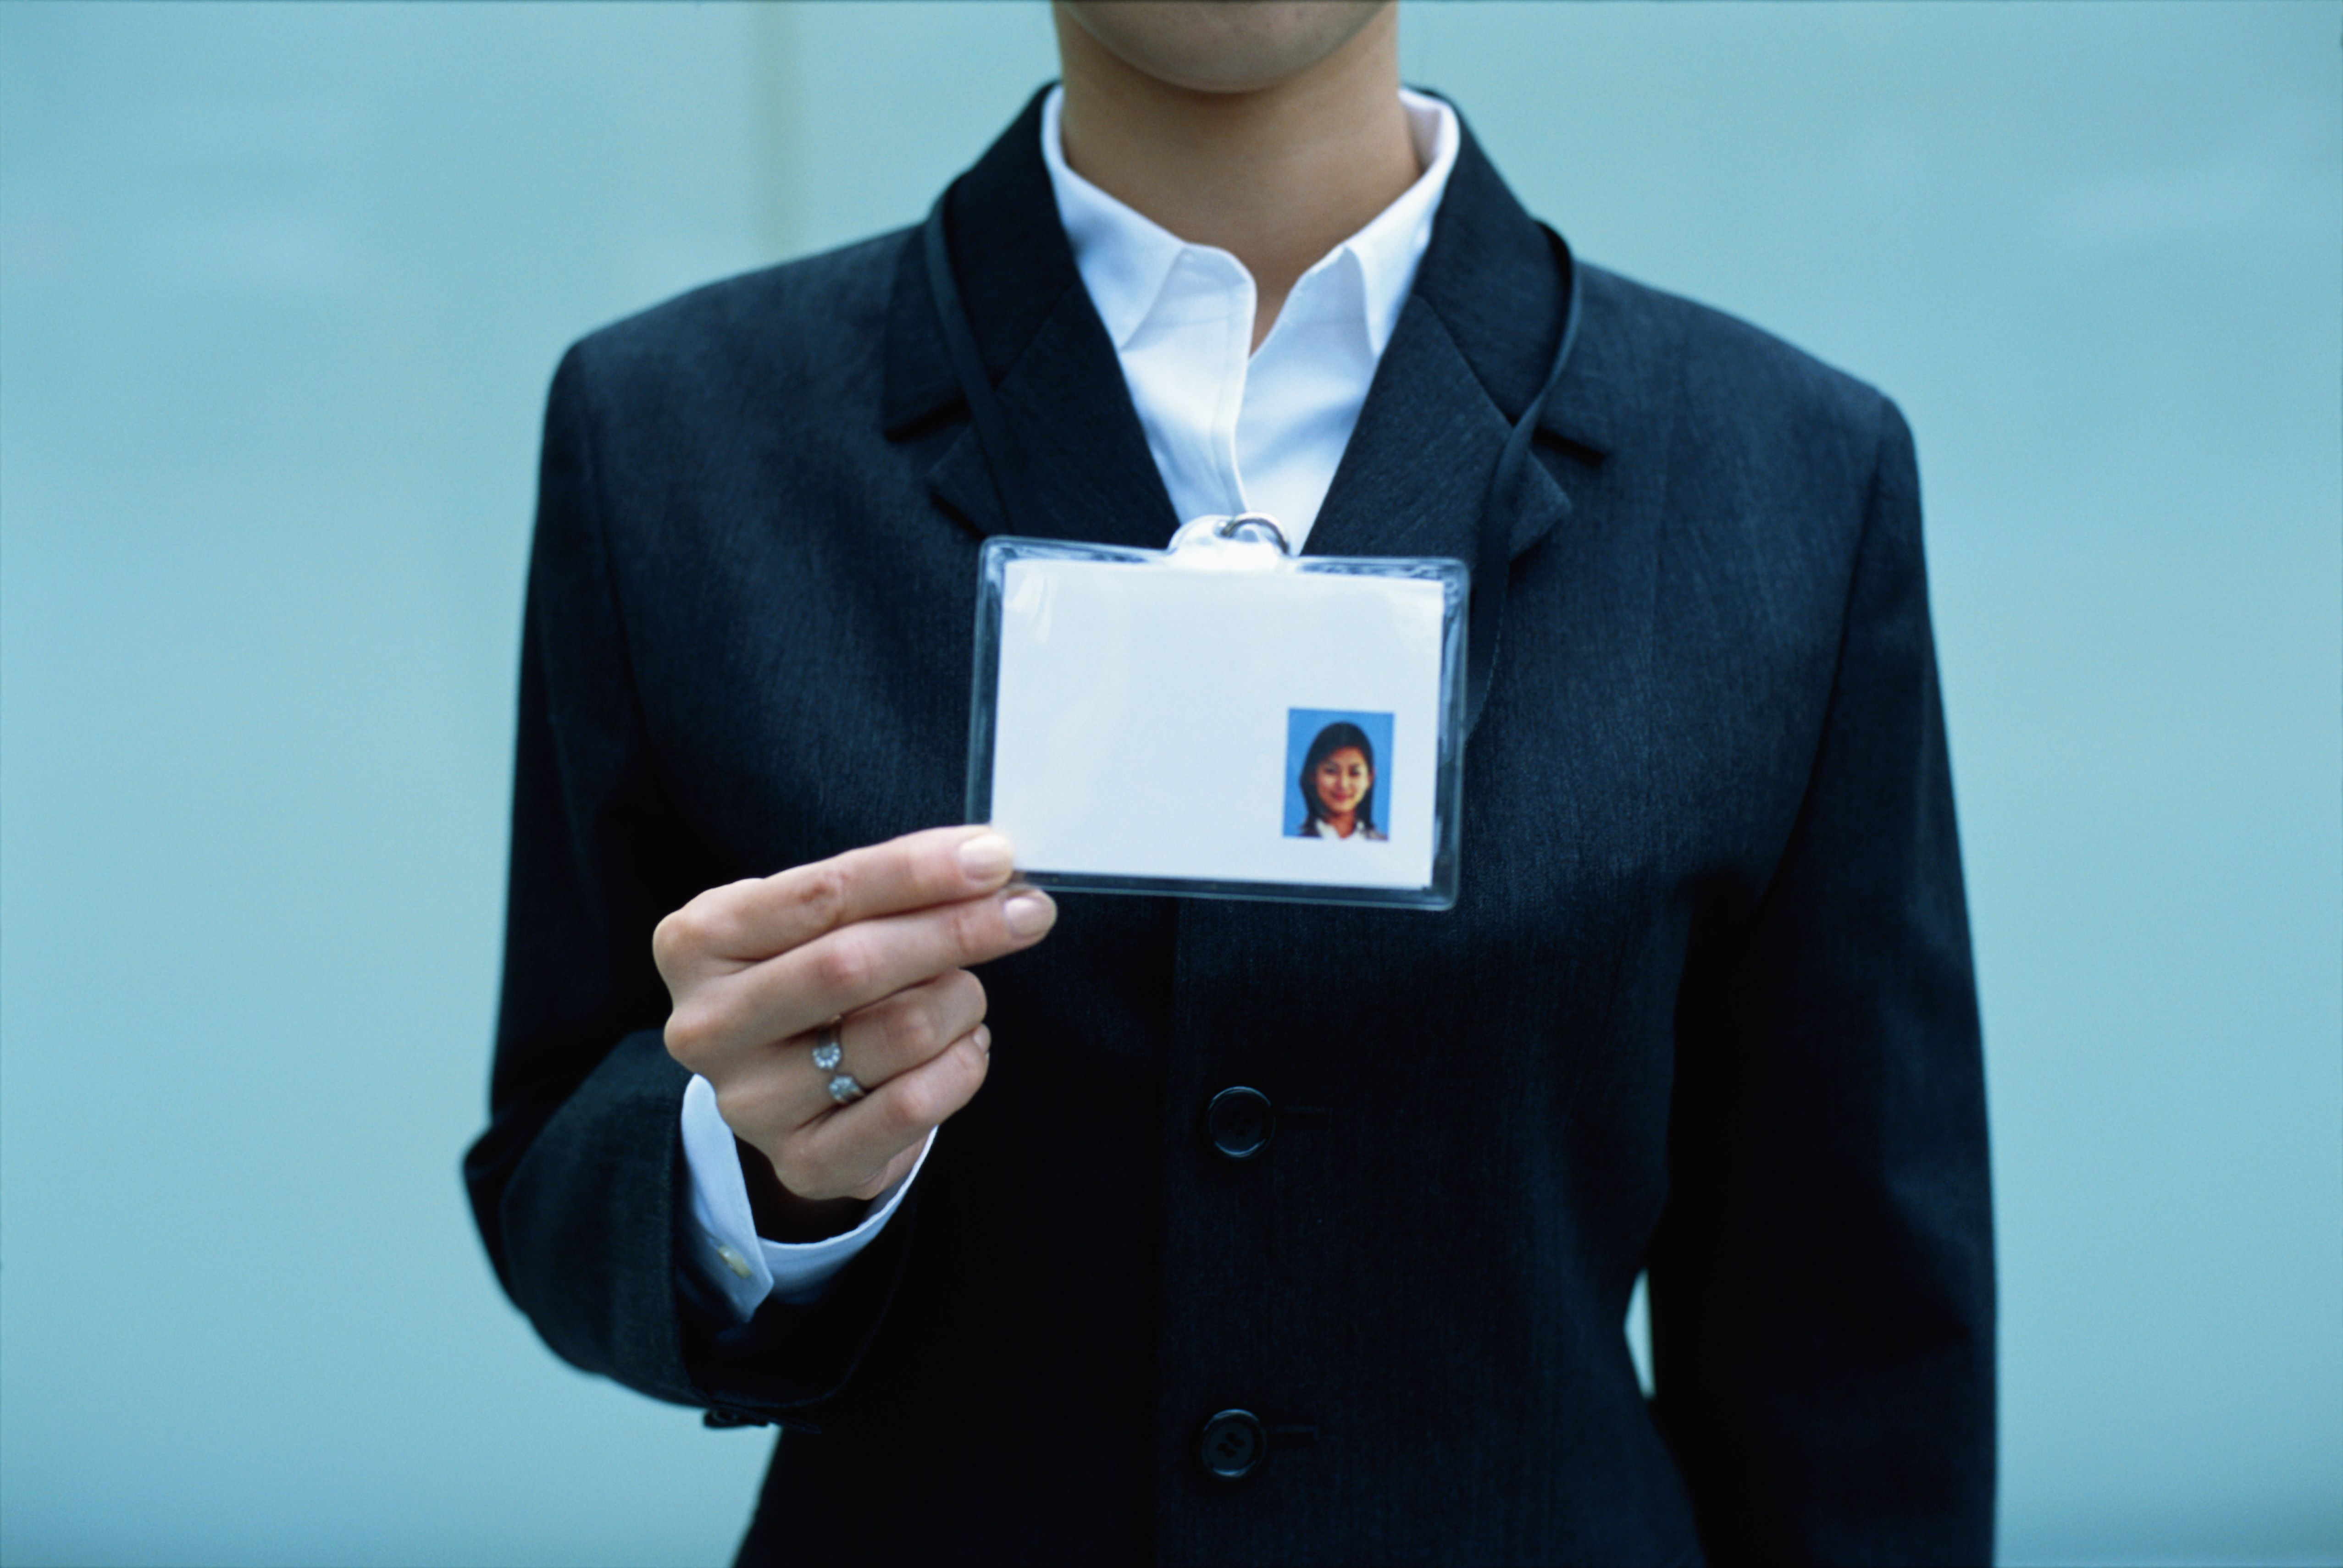 4 Easy Ways to Apply for an Employer ID Number (EIN)